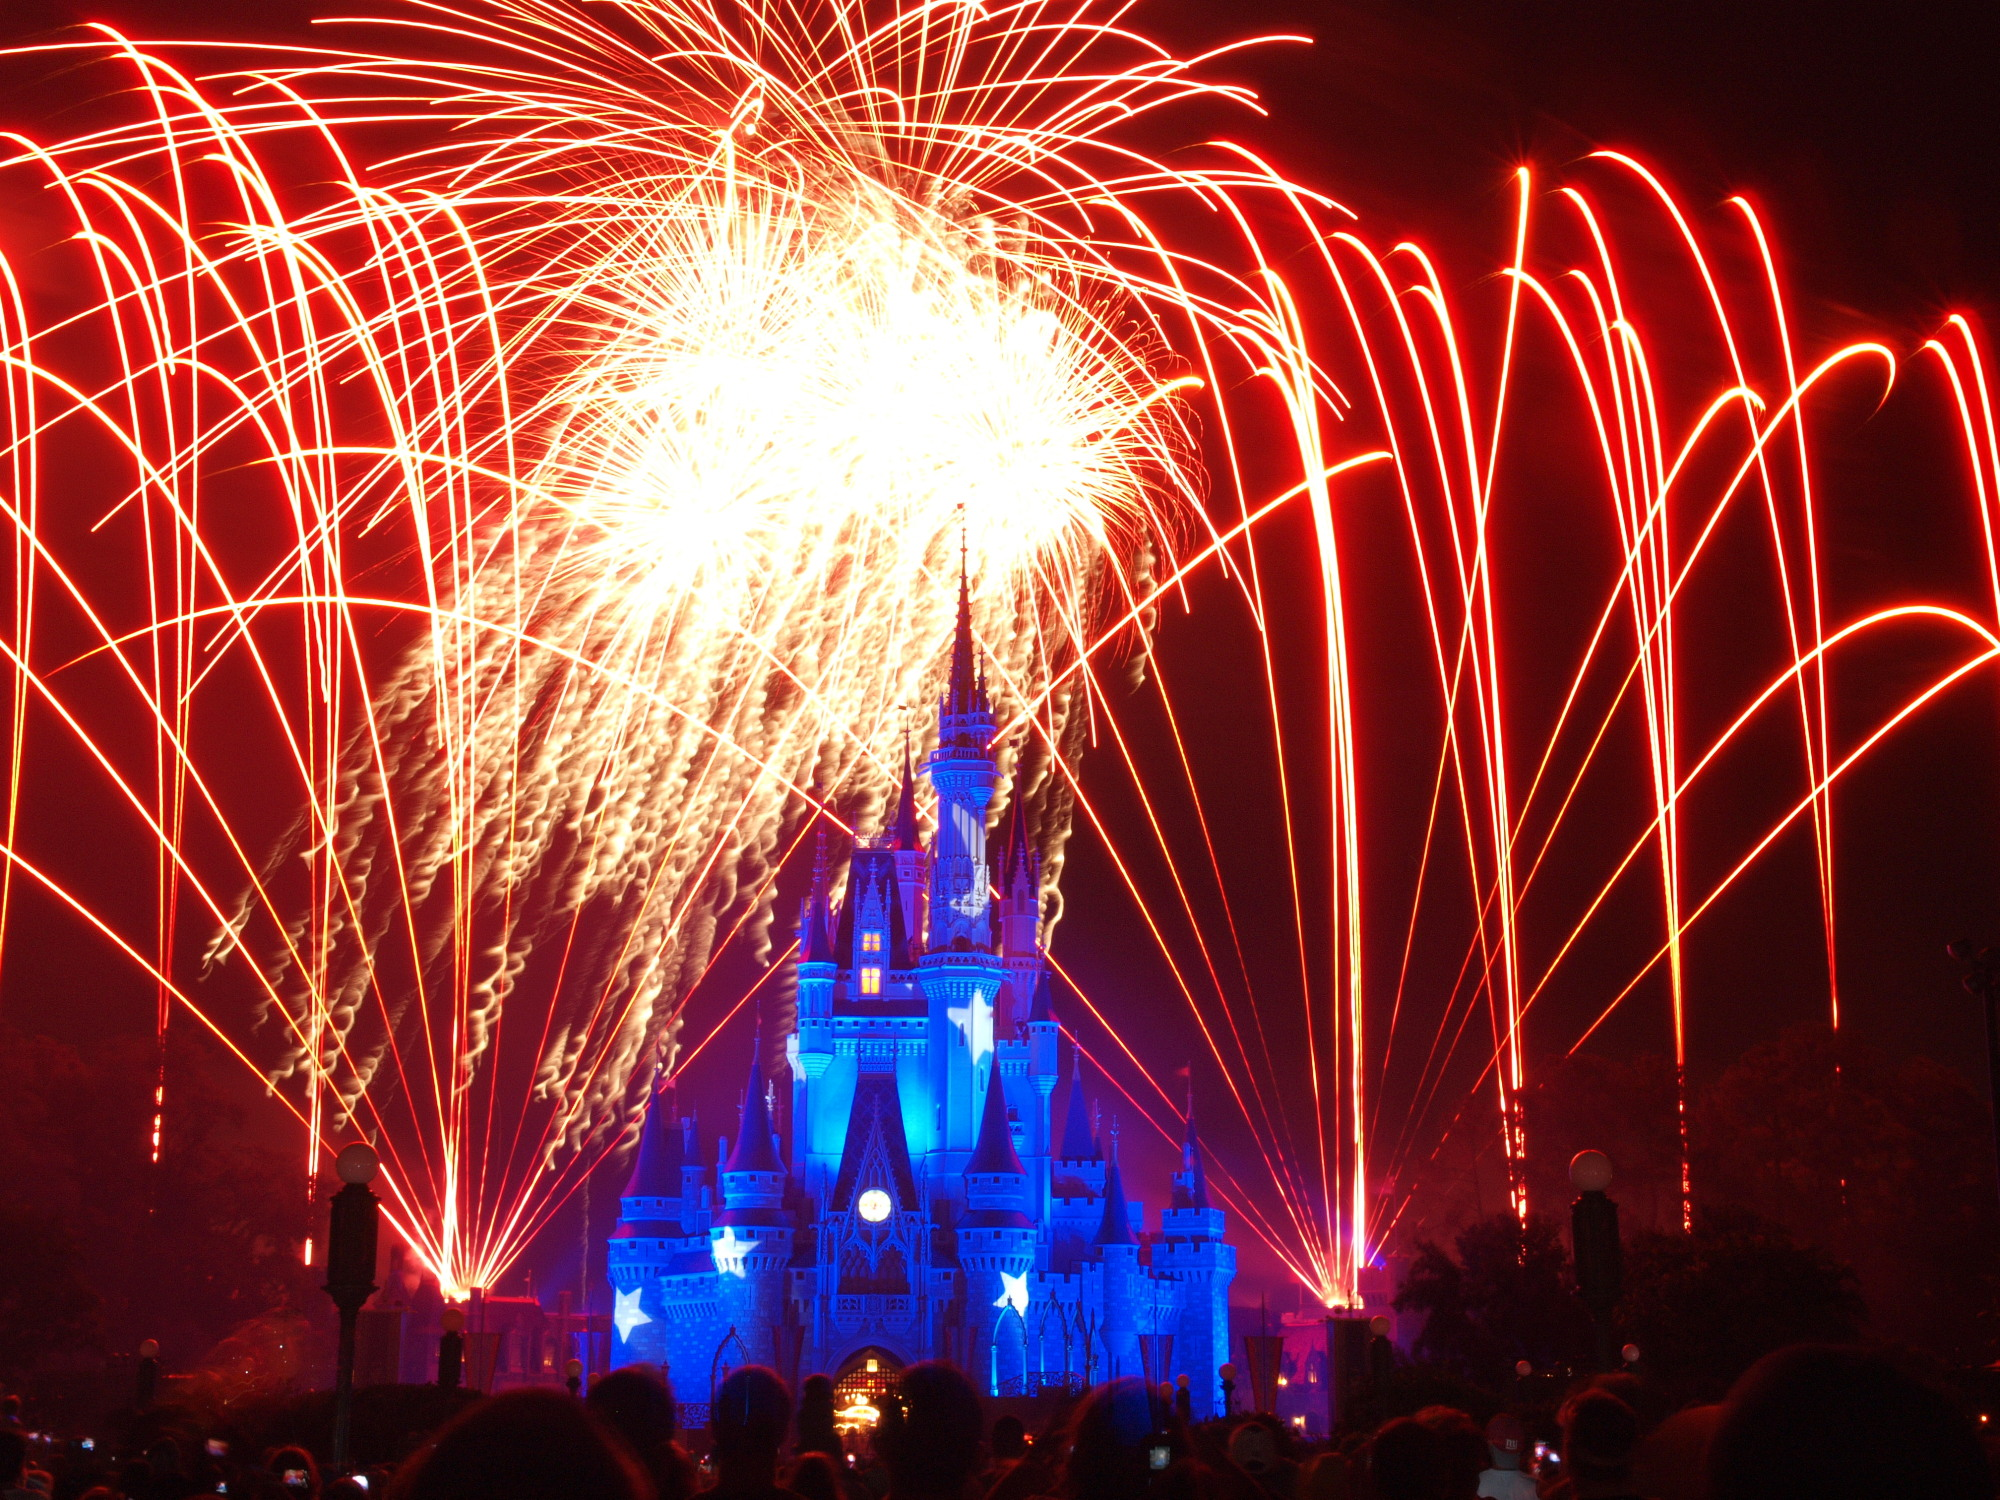 Magic Kingdom - Wishes Fireworks